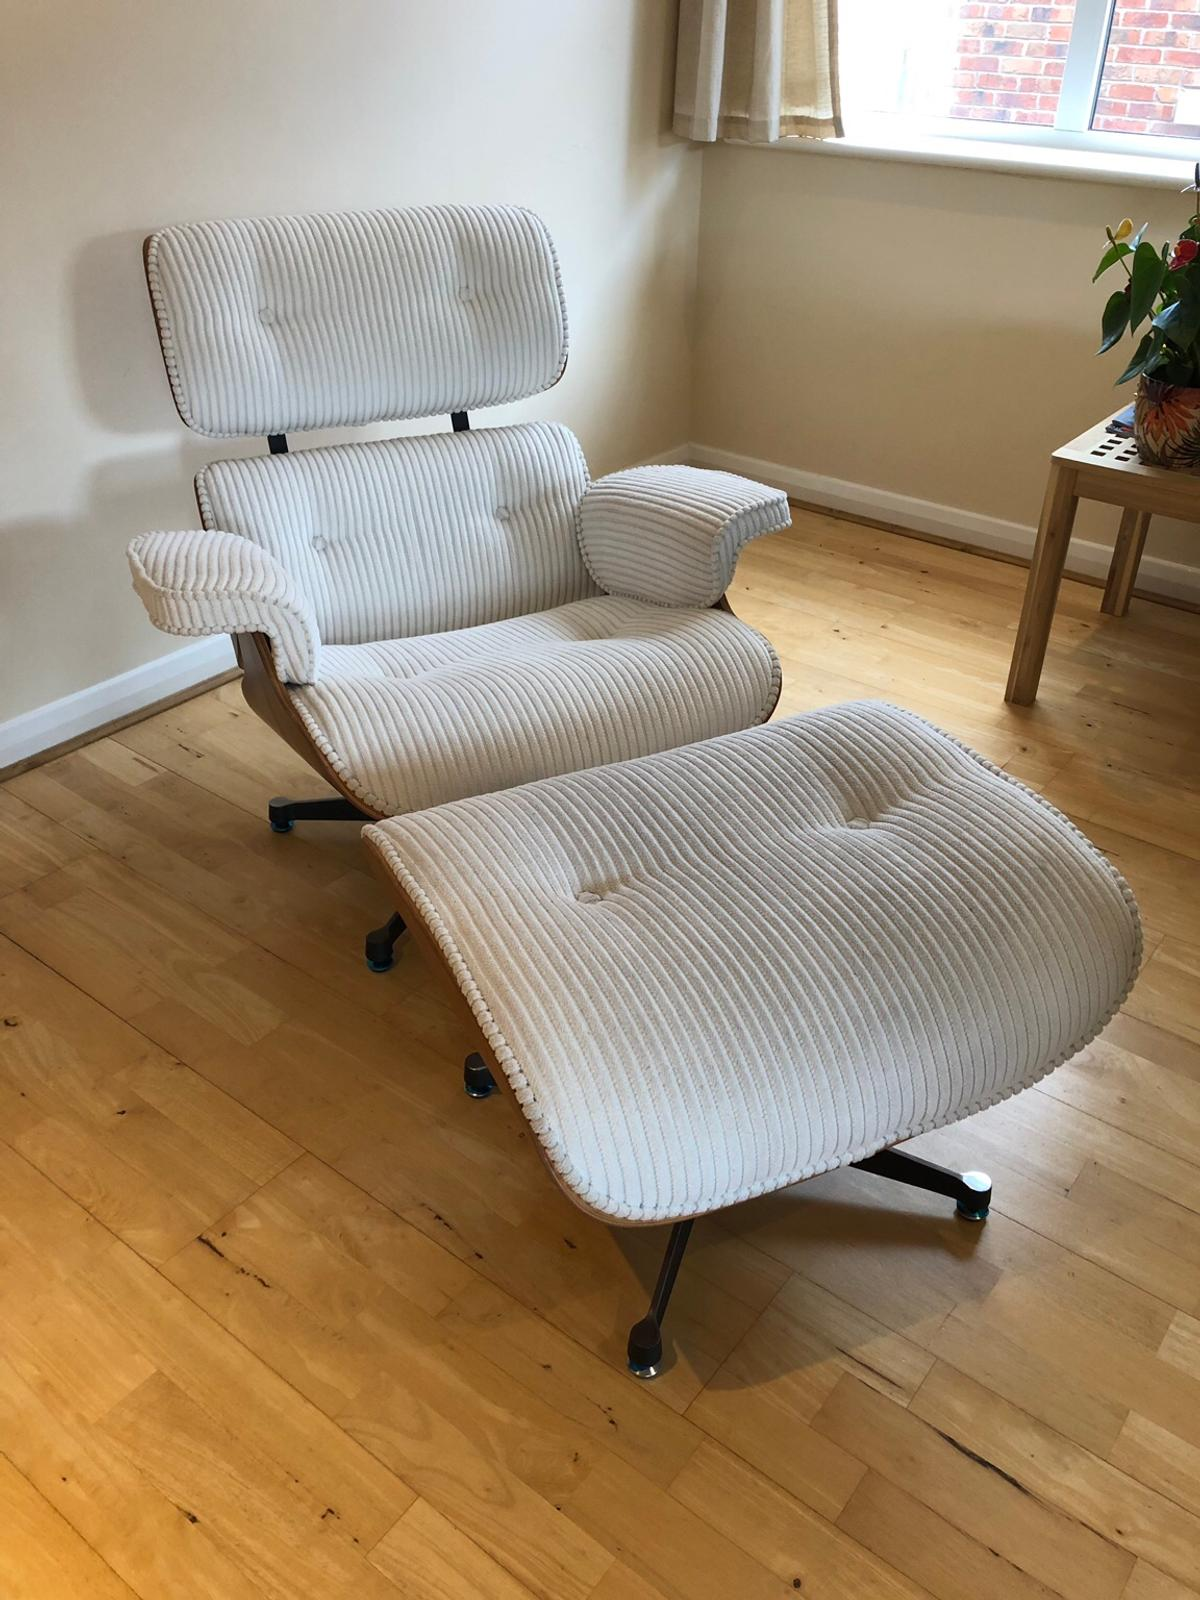 Phenomenal Charles Eames Replica Lounge Chair In B31 Birmingham For Creativecarmelina Interior Chair Design Creativecarmelinacom